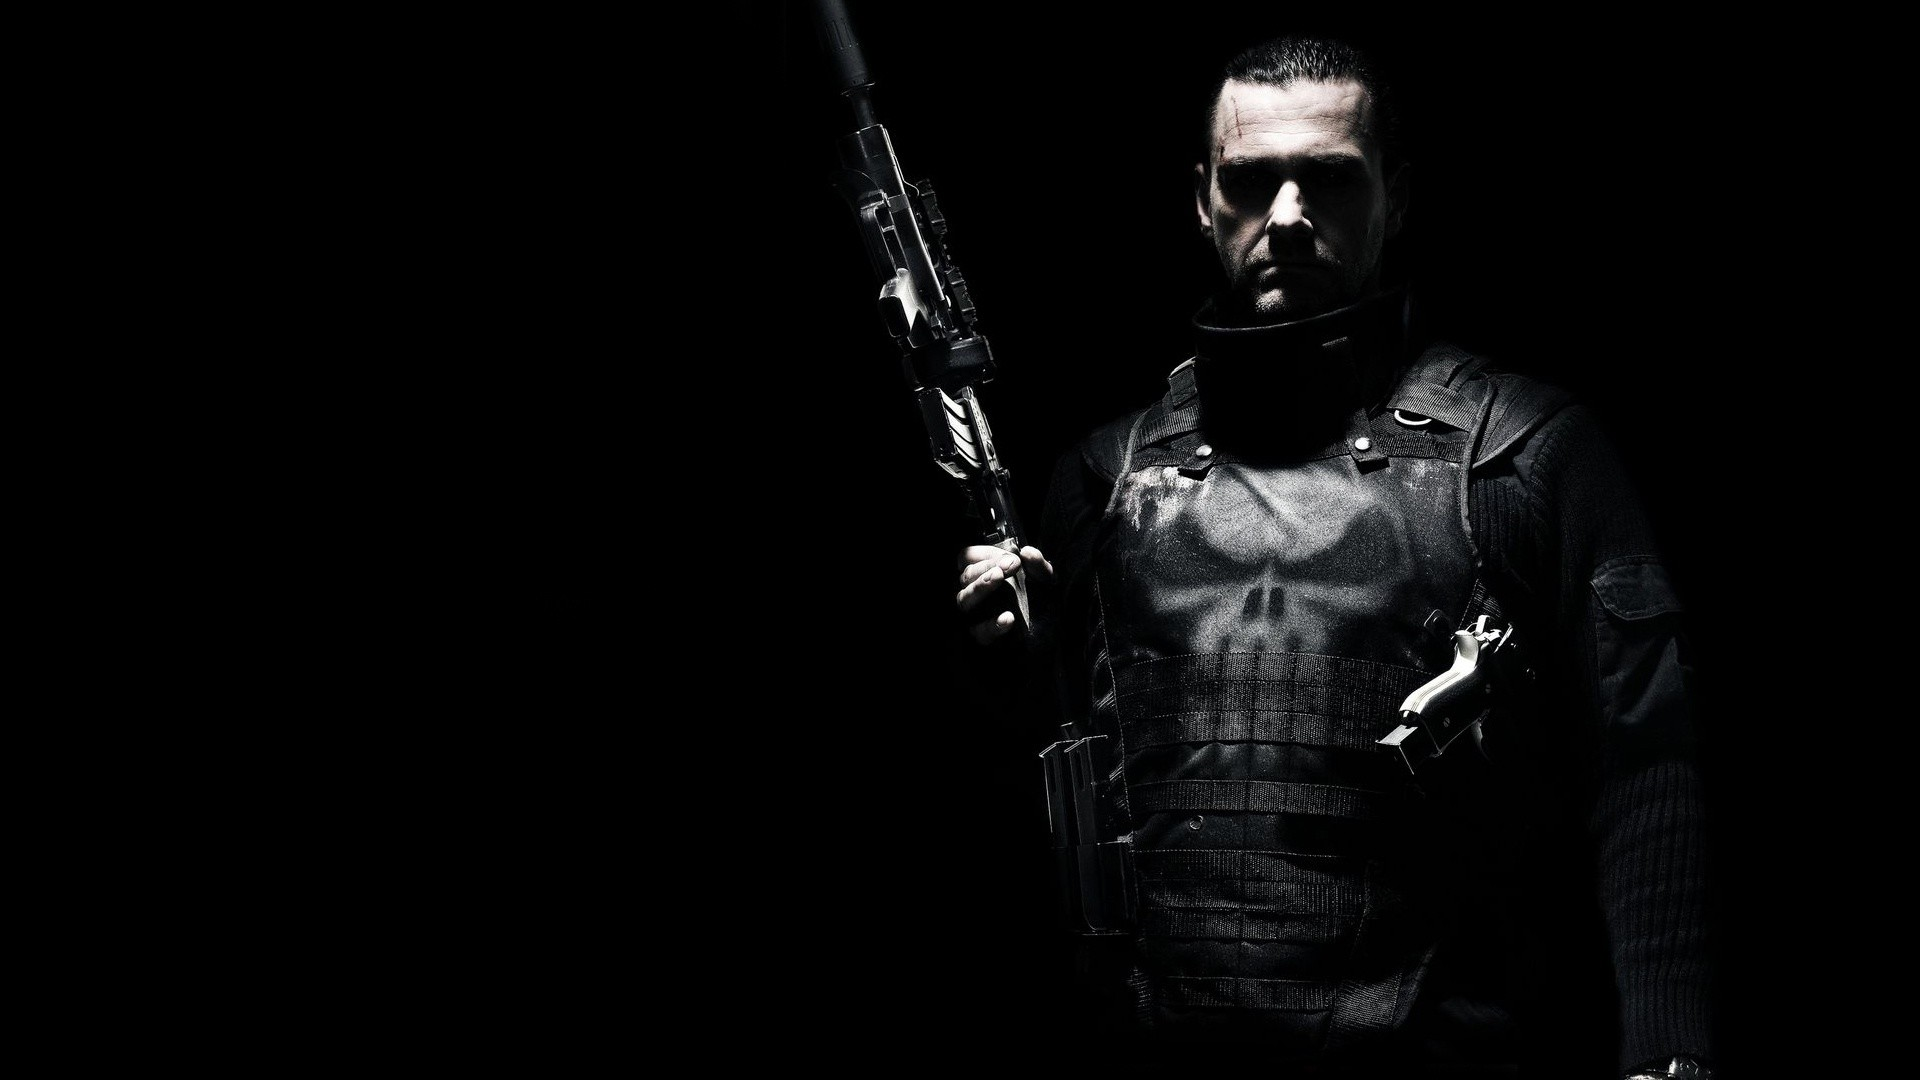 1920x1080 Punisher Wallpaper | feelgrafix.com | Pinterest | Punisher and Wallpaper